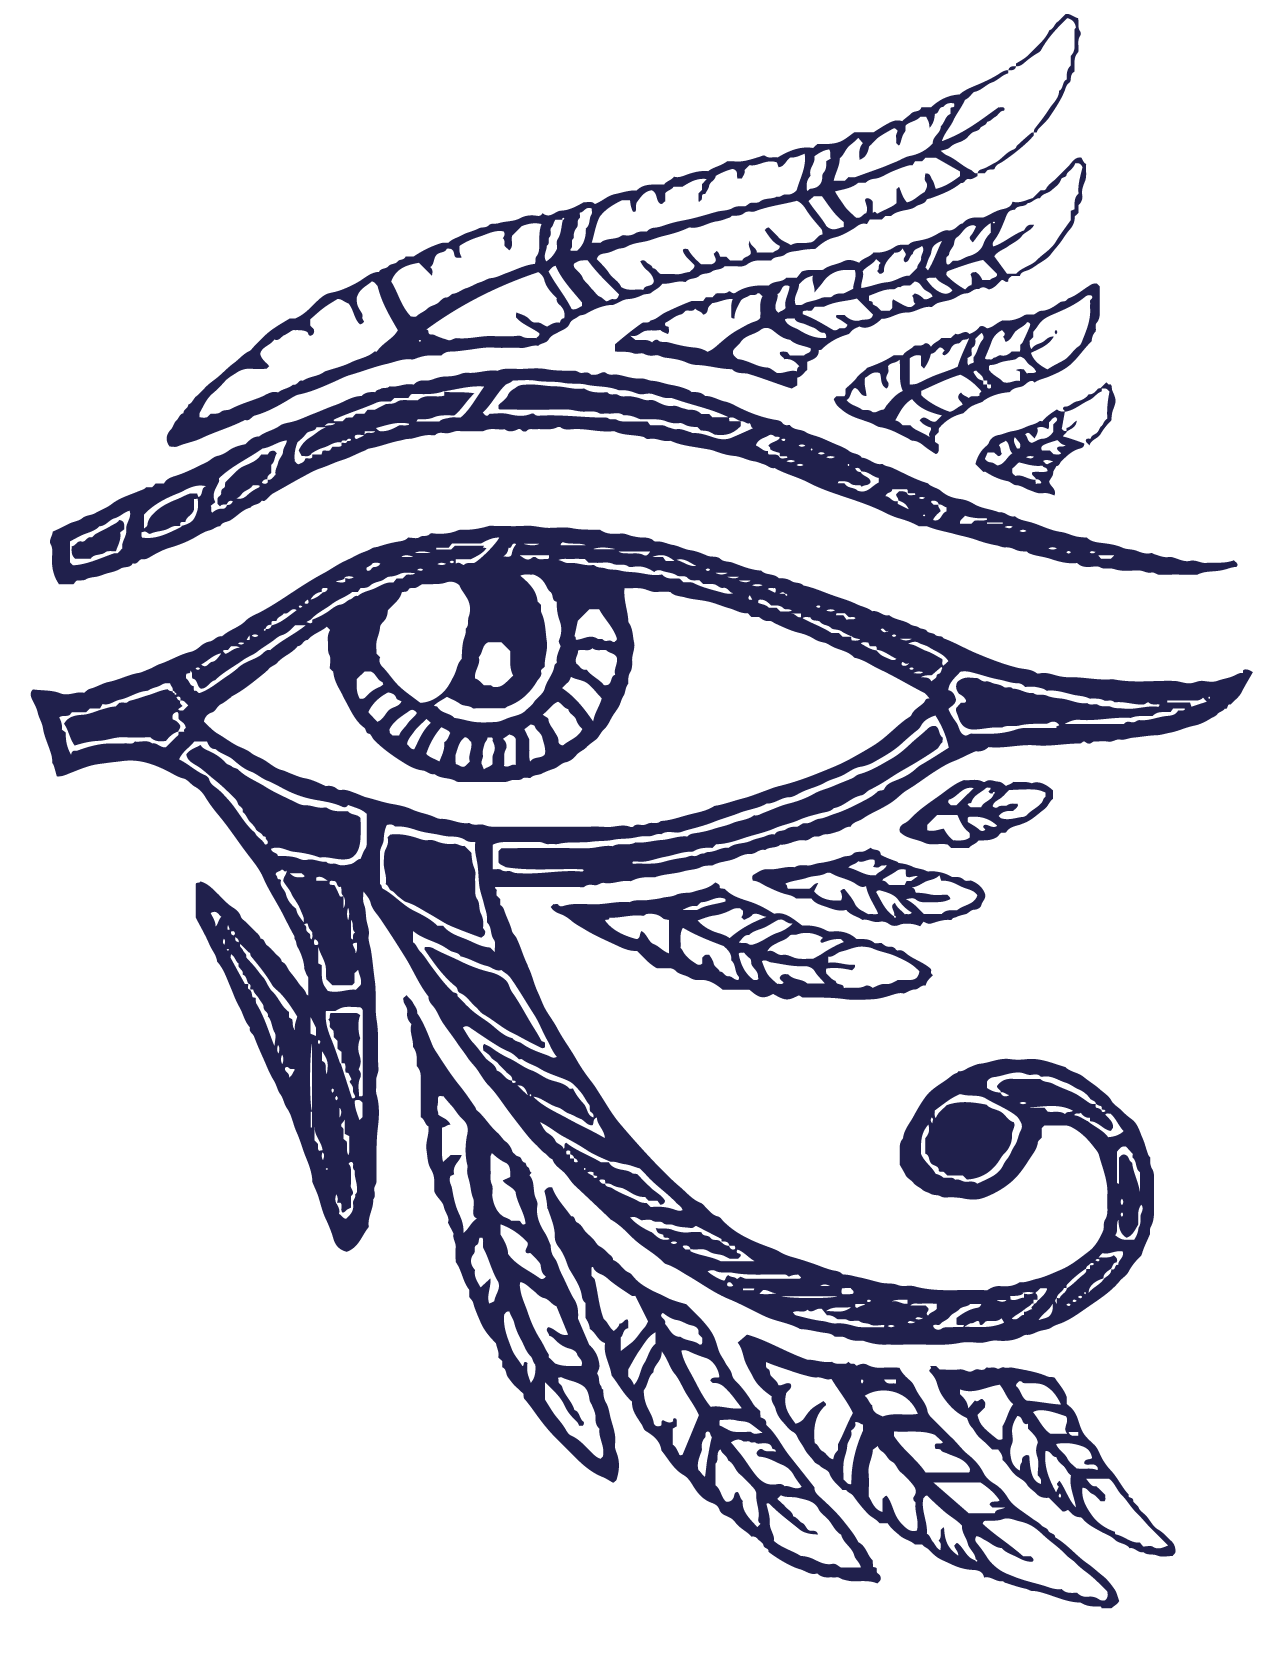 The Eye Of Horus Its Meaning And Symbolism Symbols And Meanings